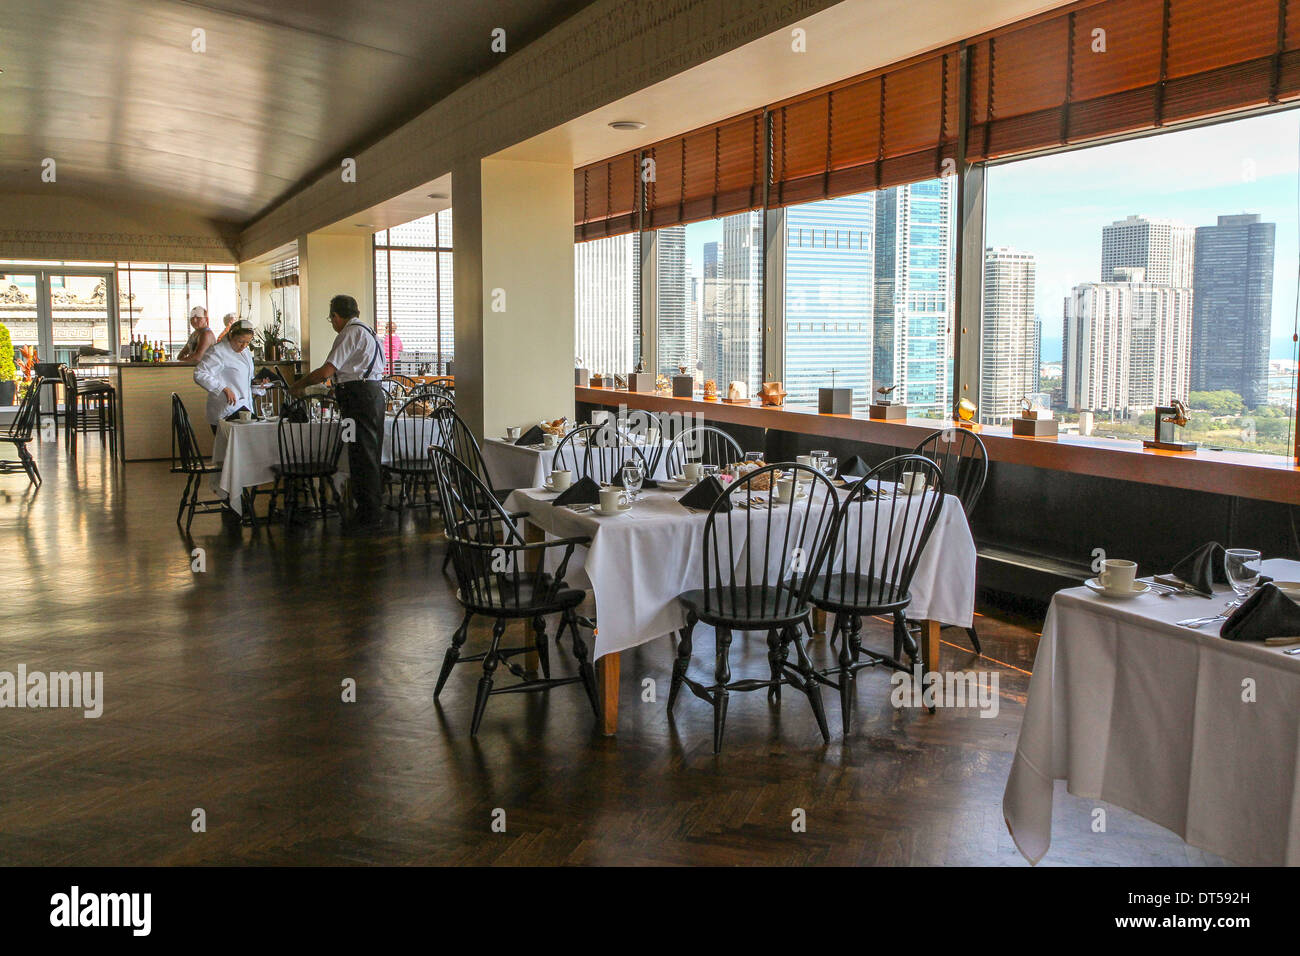 Dining room at Chicago's Cliff Dwellers Club - Stock Image